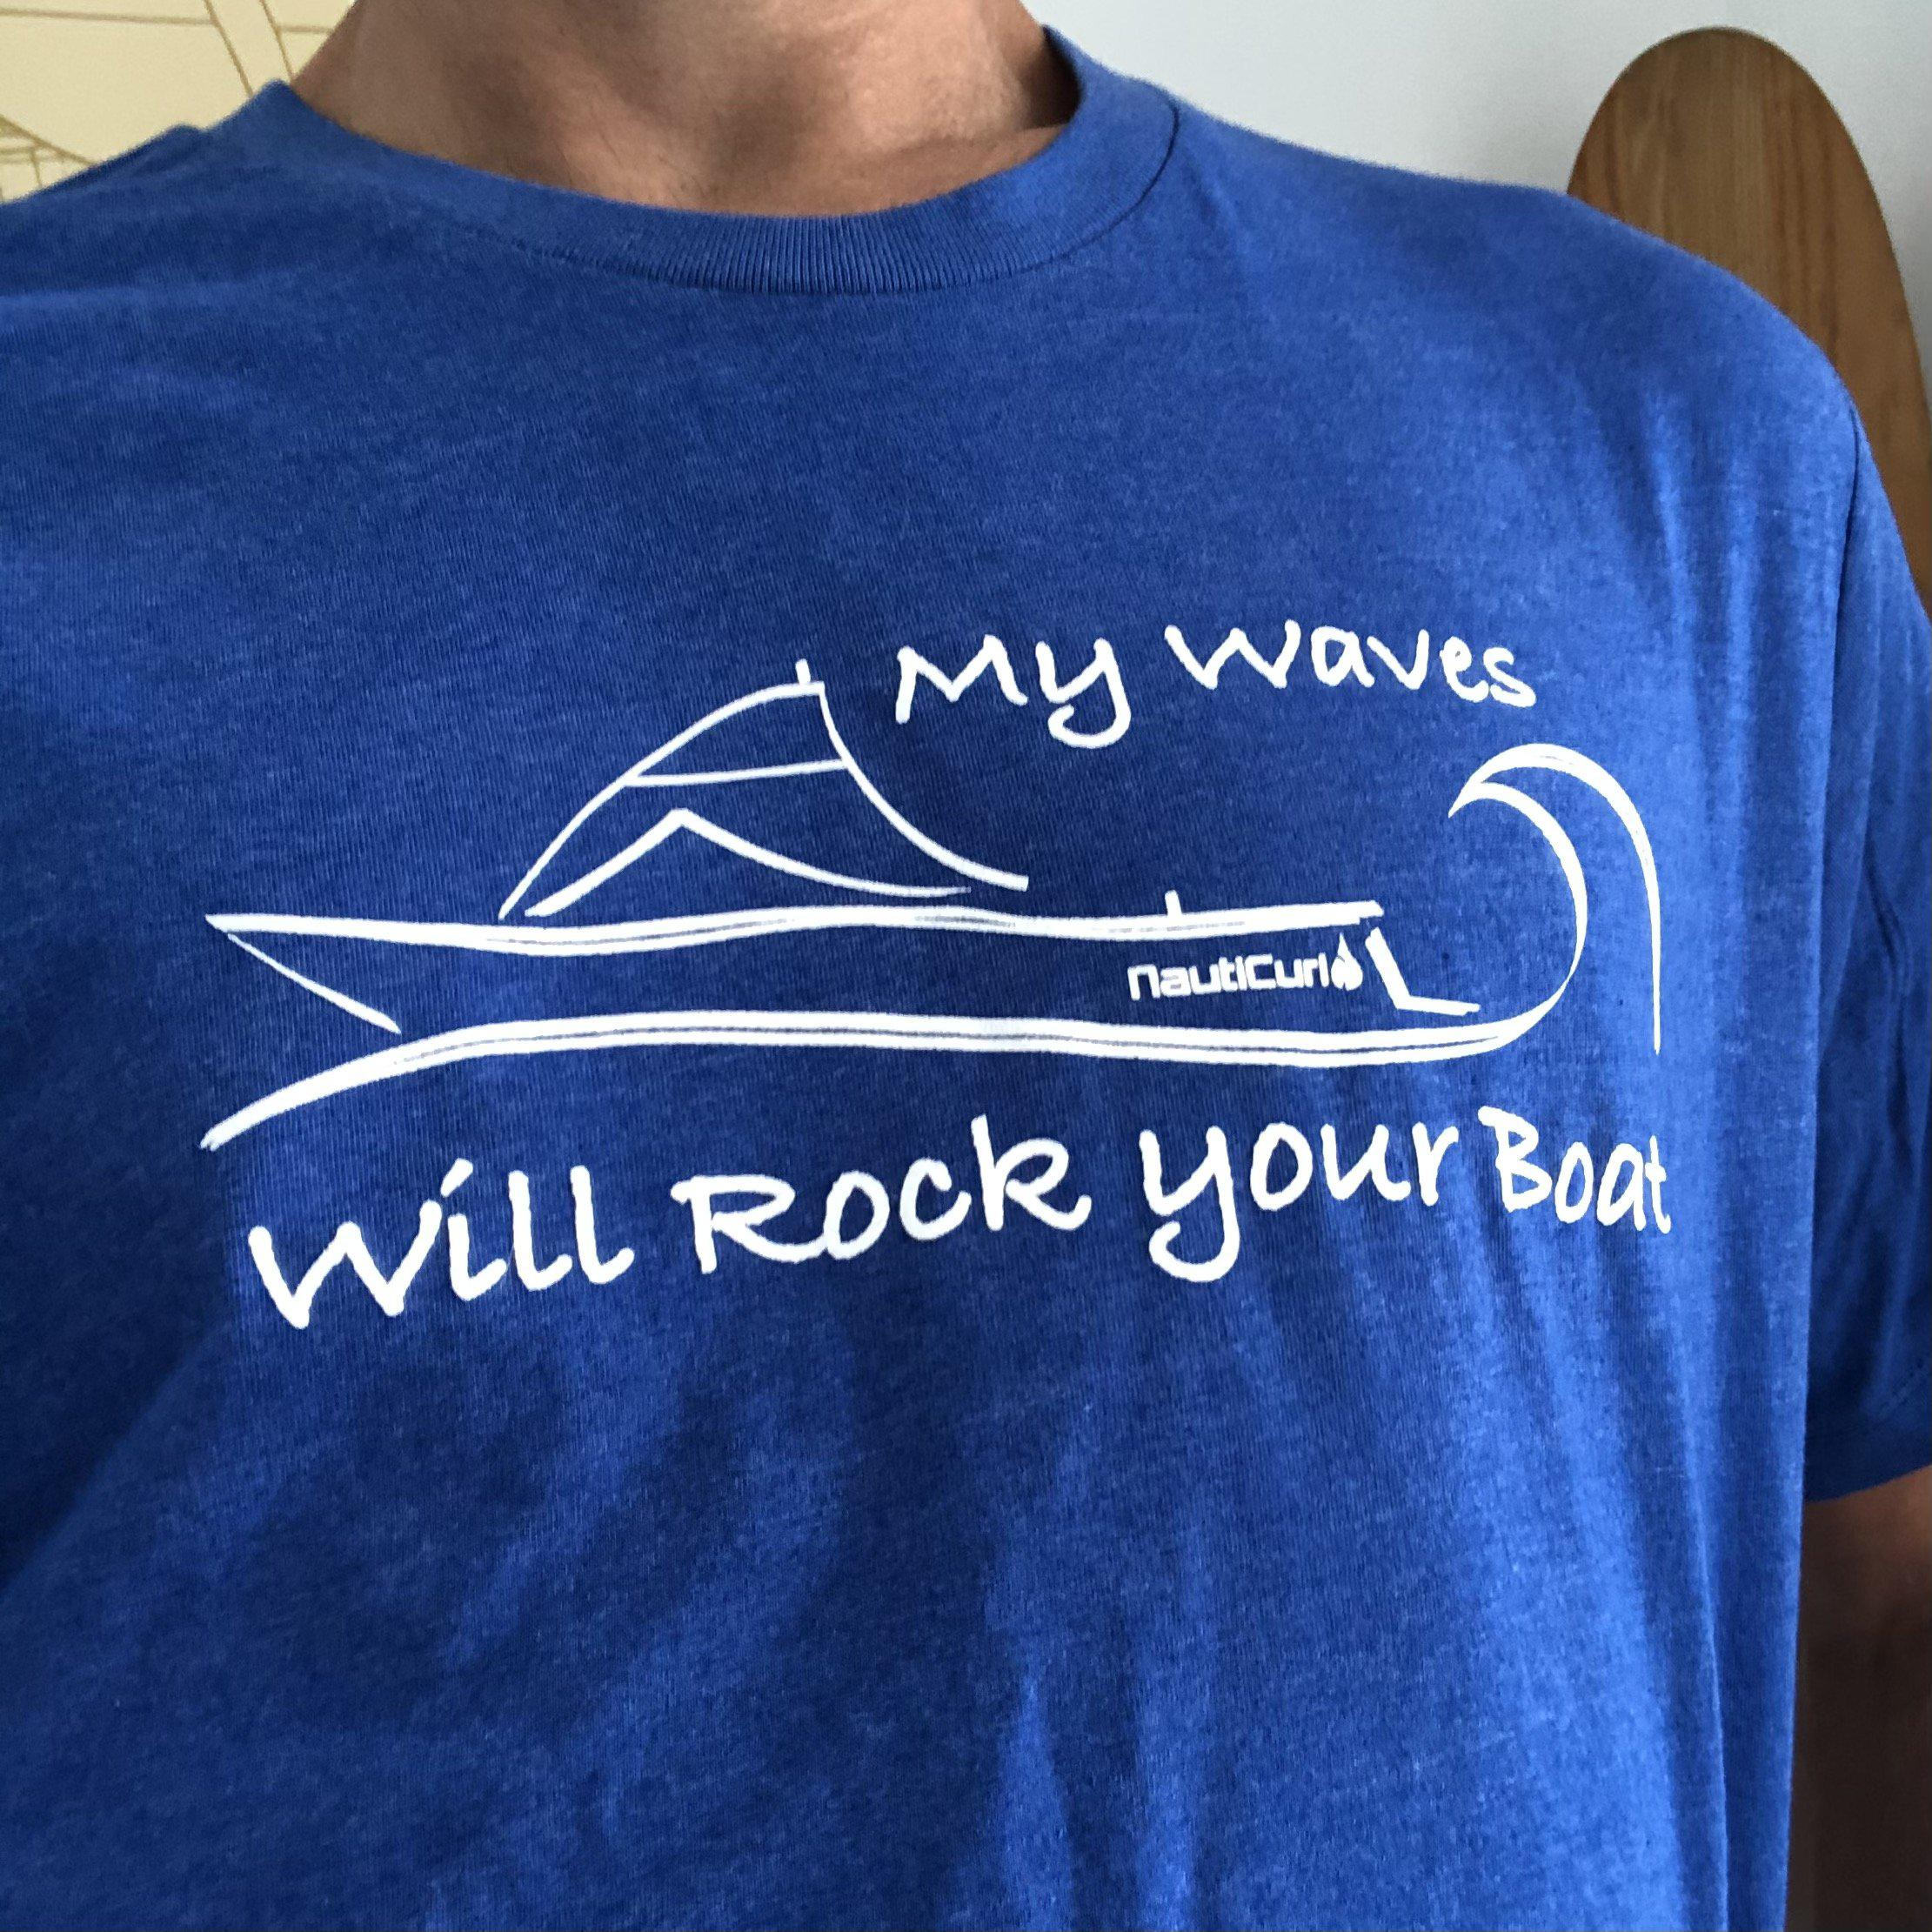 Funny Boating Shirt - My Waves will Rock your Boat - NautiCurl